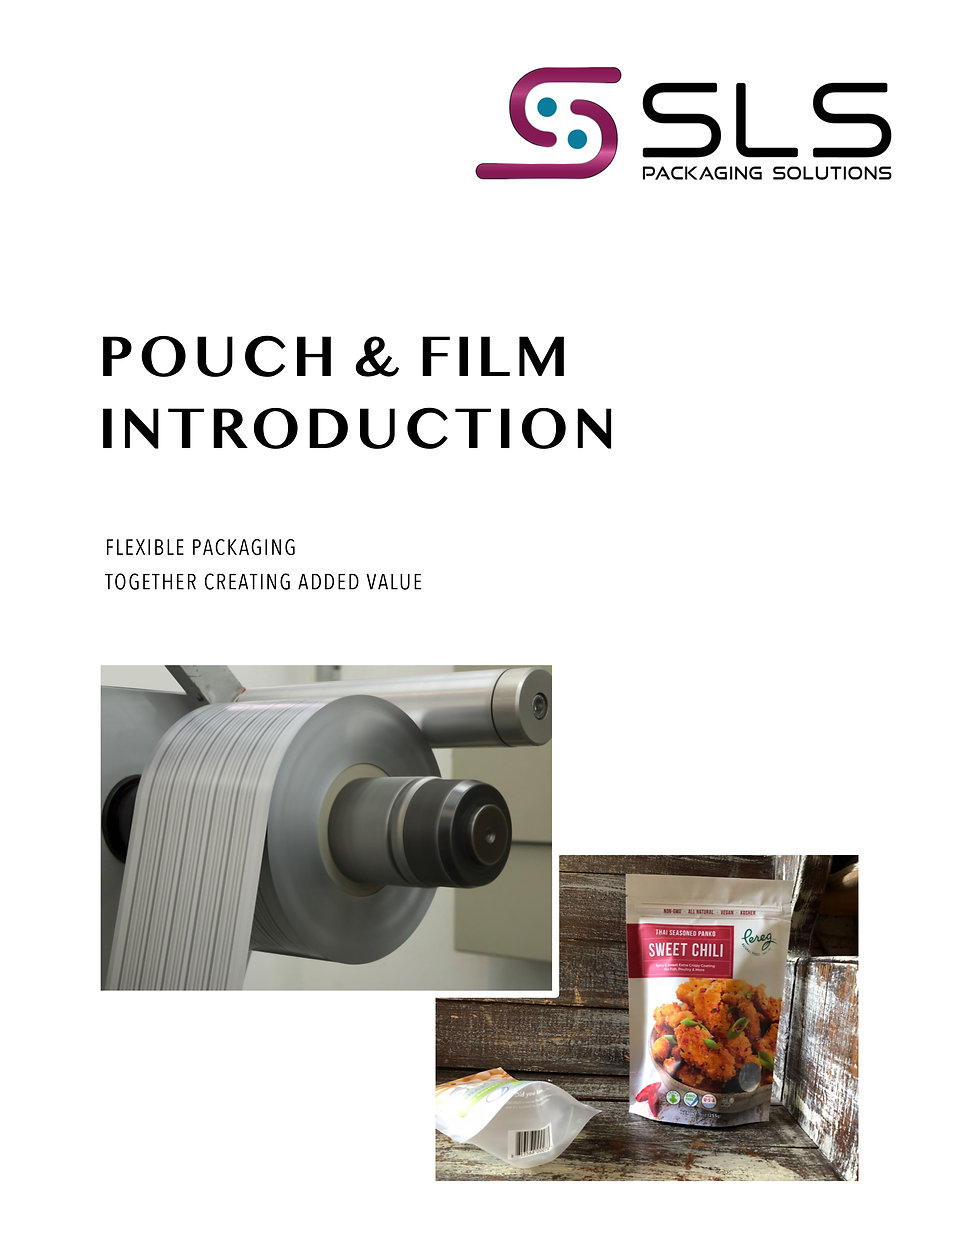 SLS-Packaging-Solutions-brochure-final-1